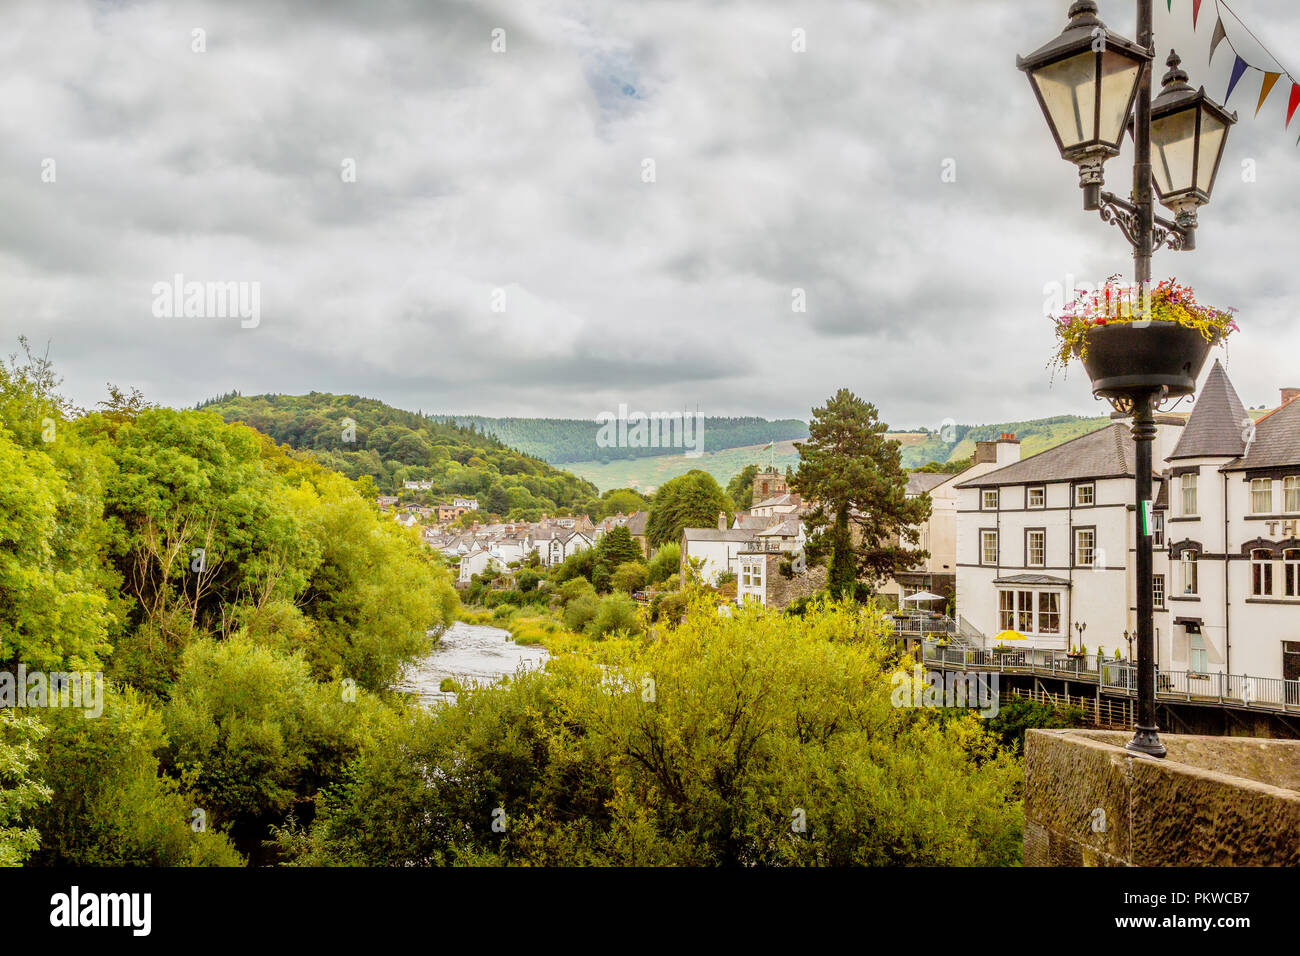 Views from the bridge in Llangollen towards the beautiful welsh landscape - Stock Image